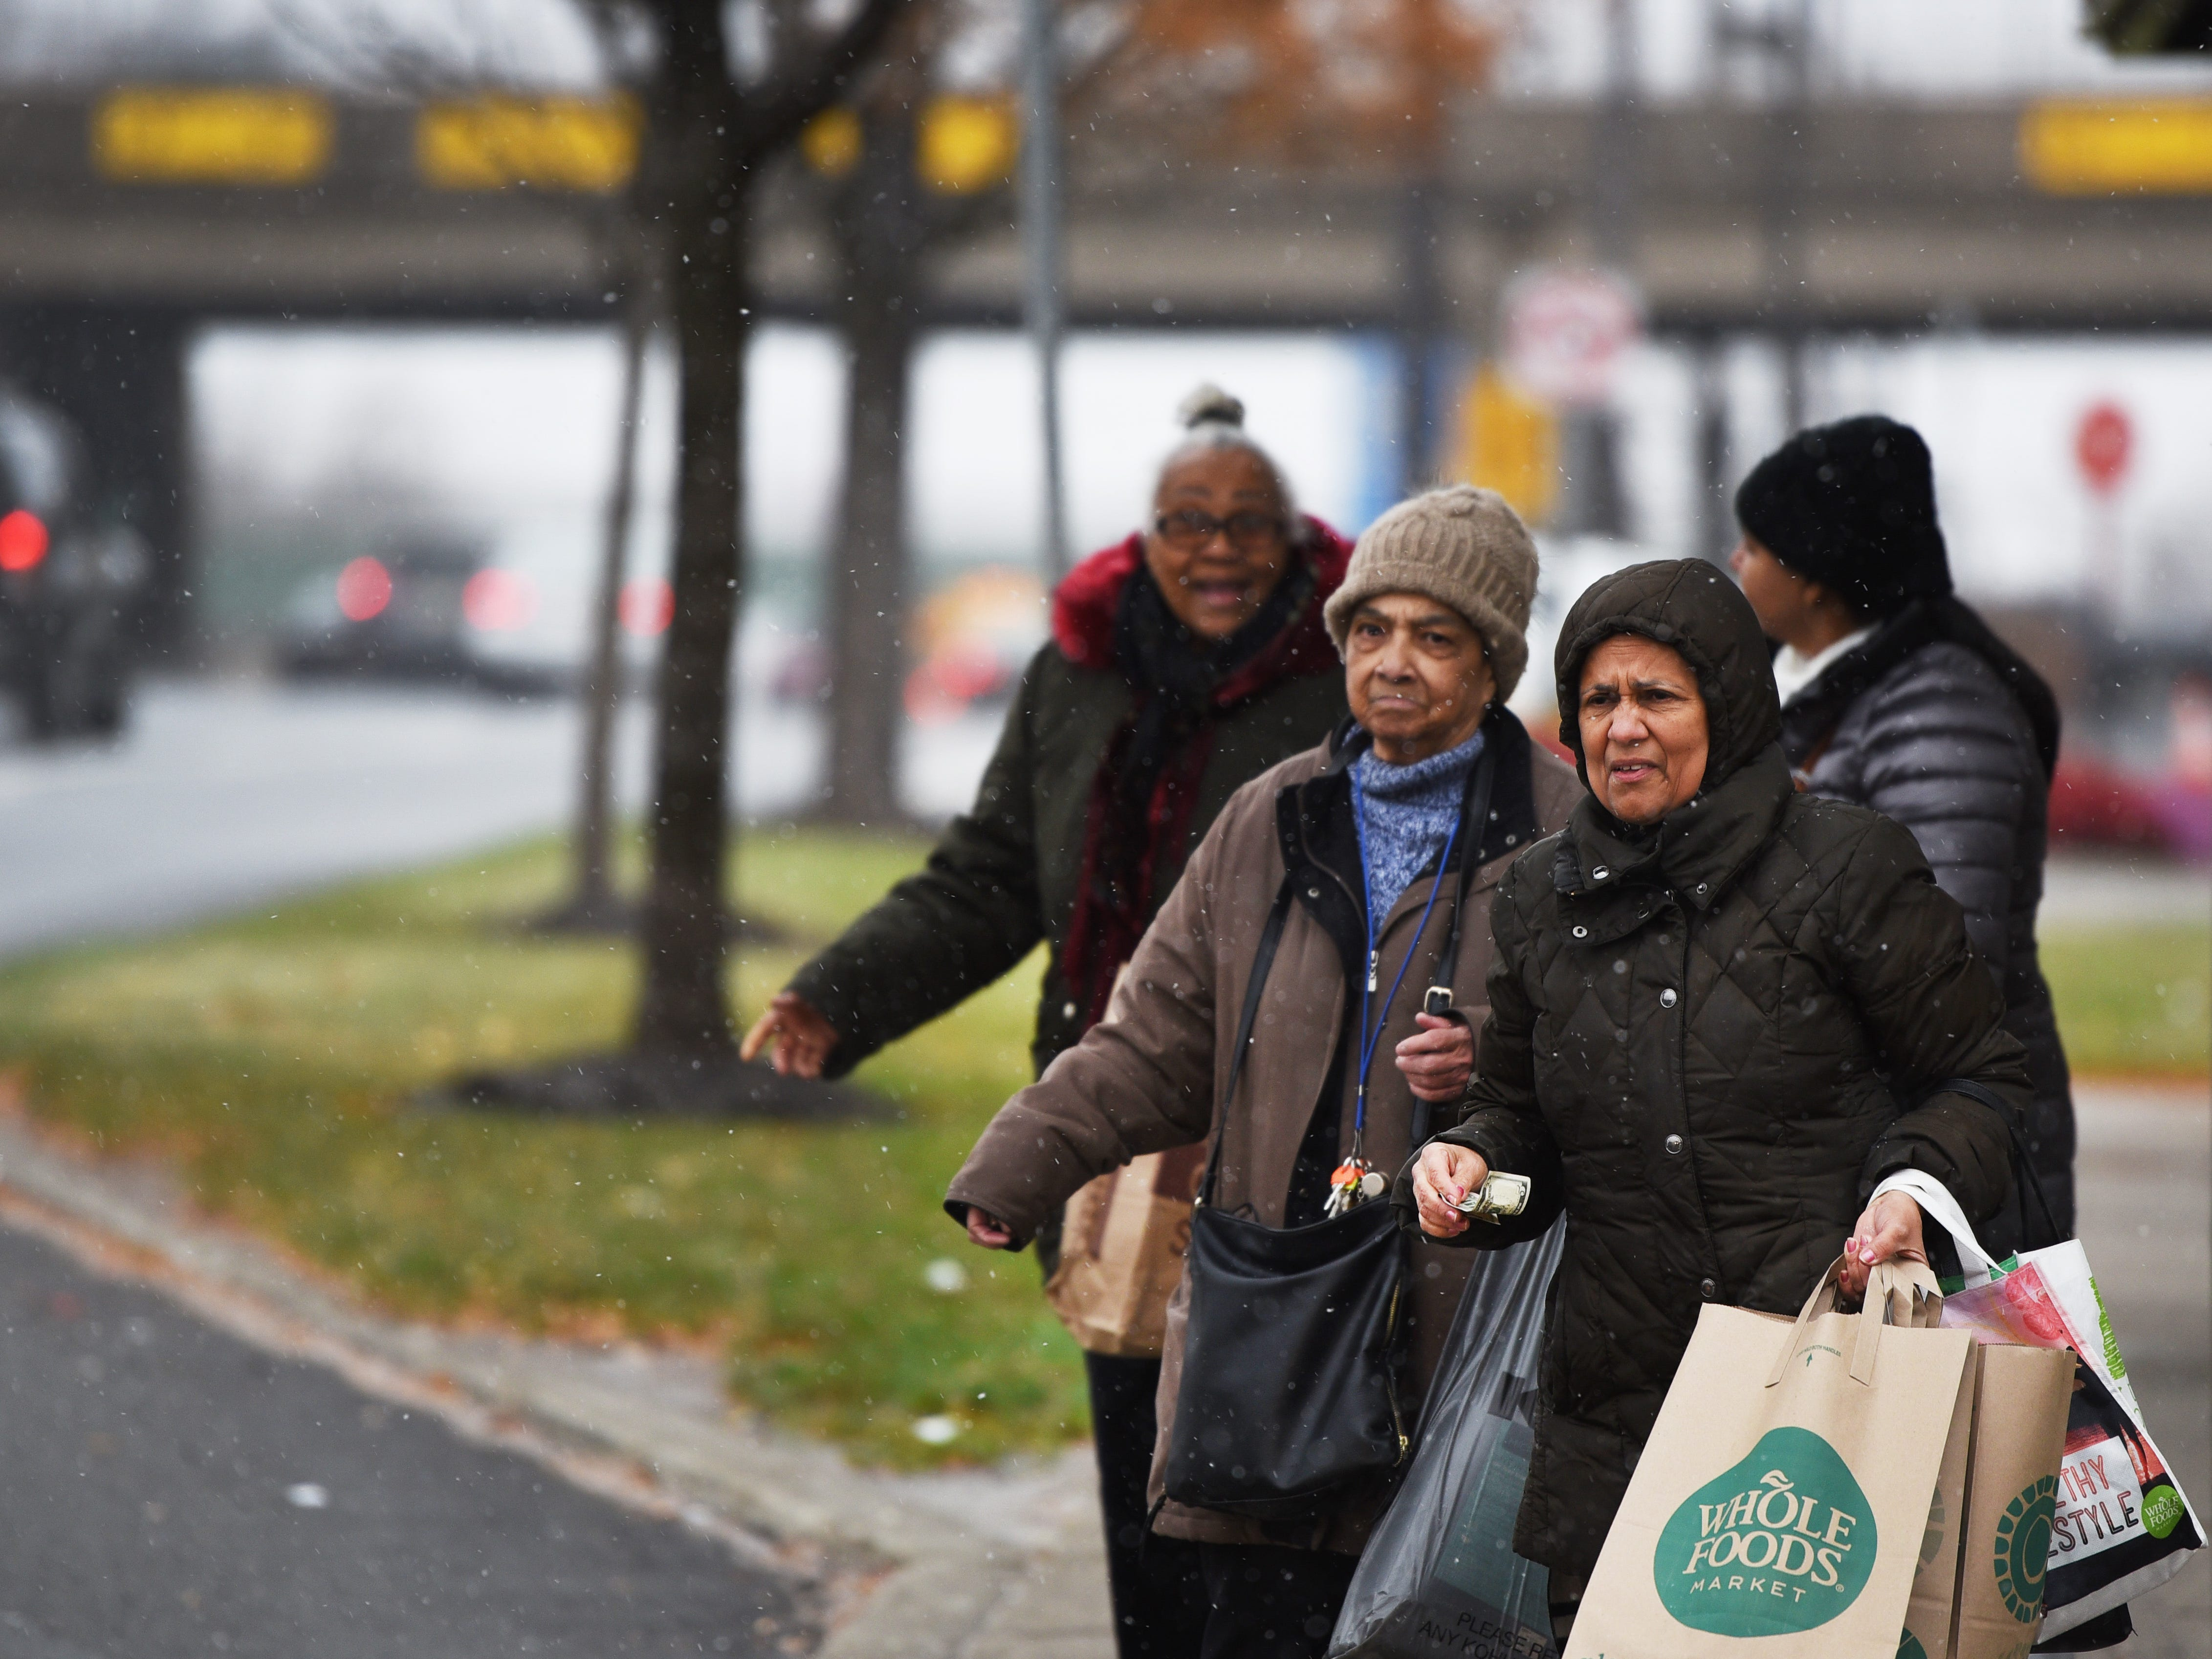 November 15, 2018, Paramus, NJ, USAShoppers wait at the stop along Route 4 East as the snow begins to fall at Bergen Town Center.